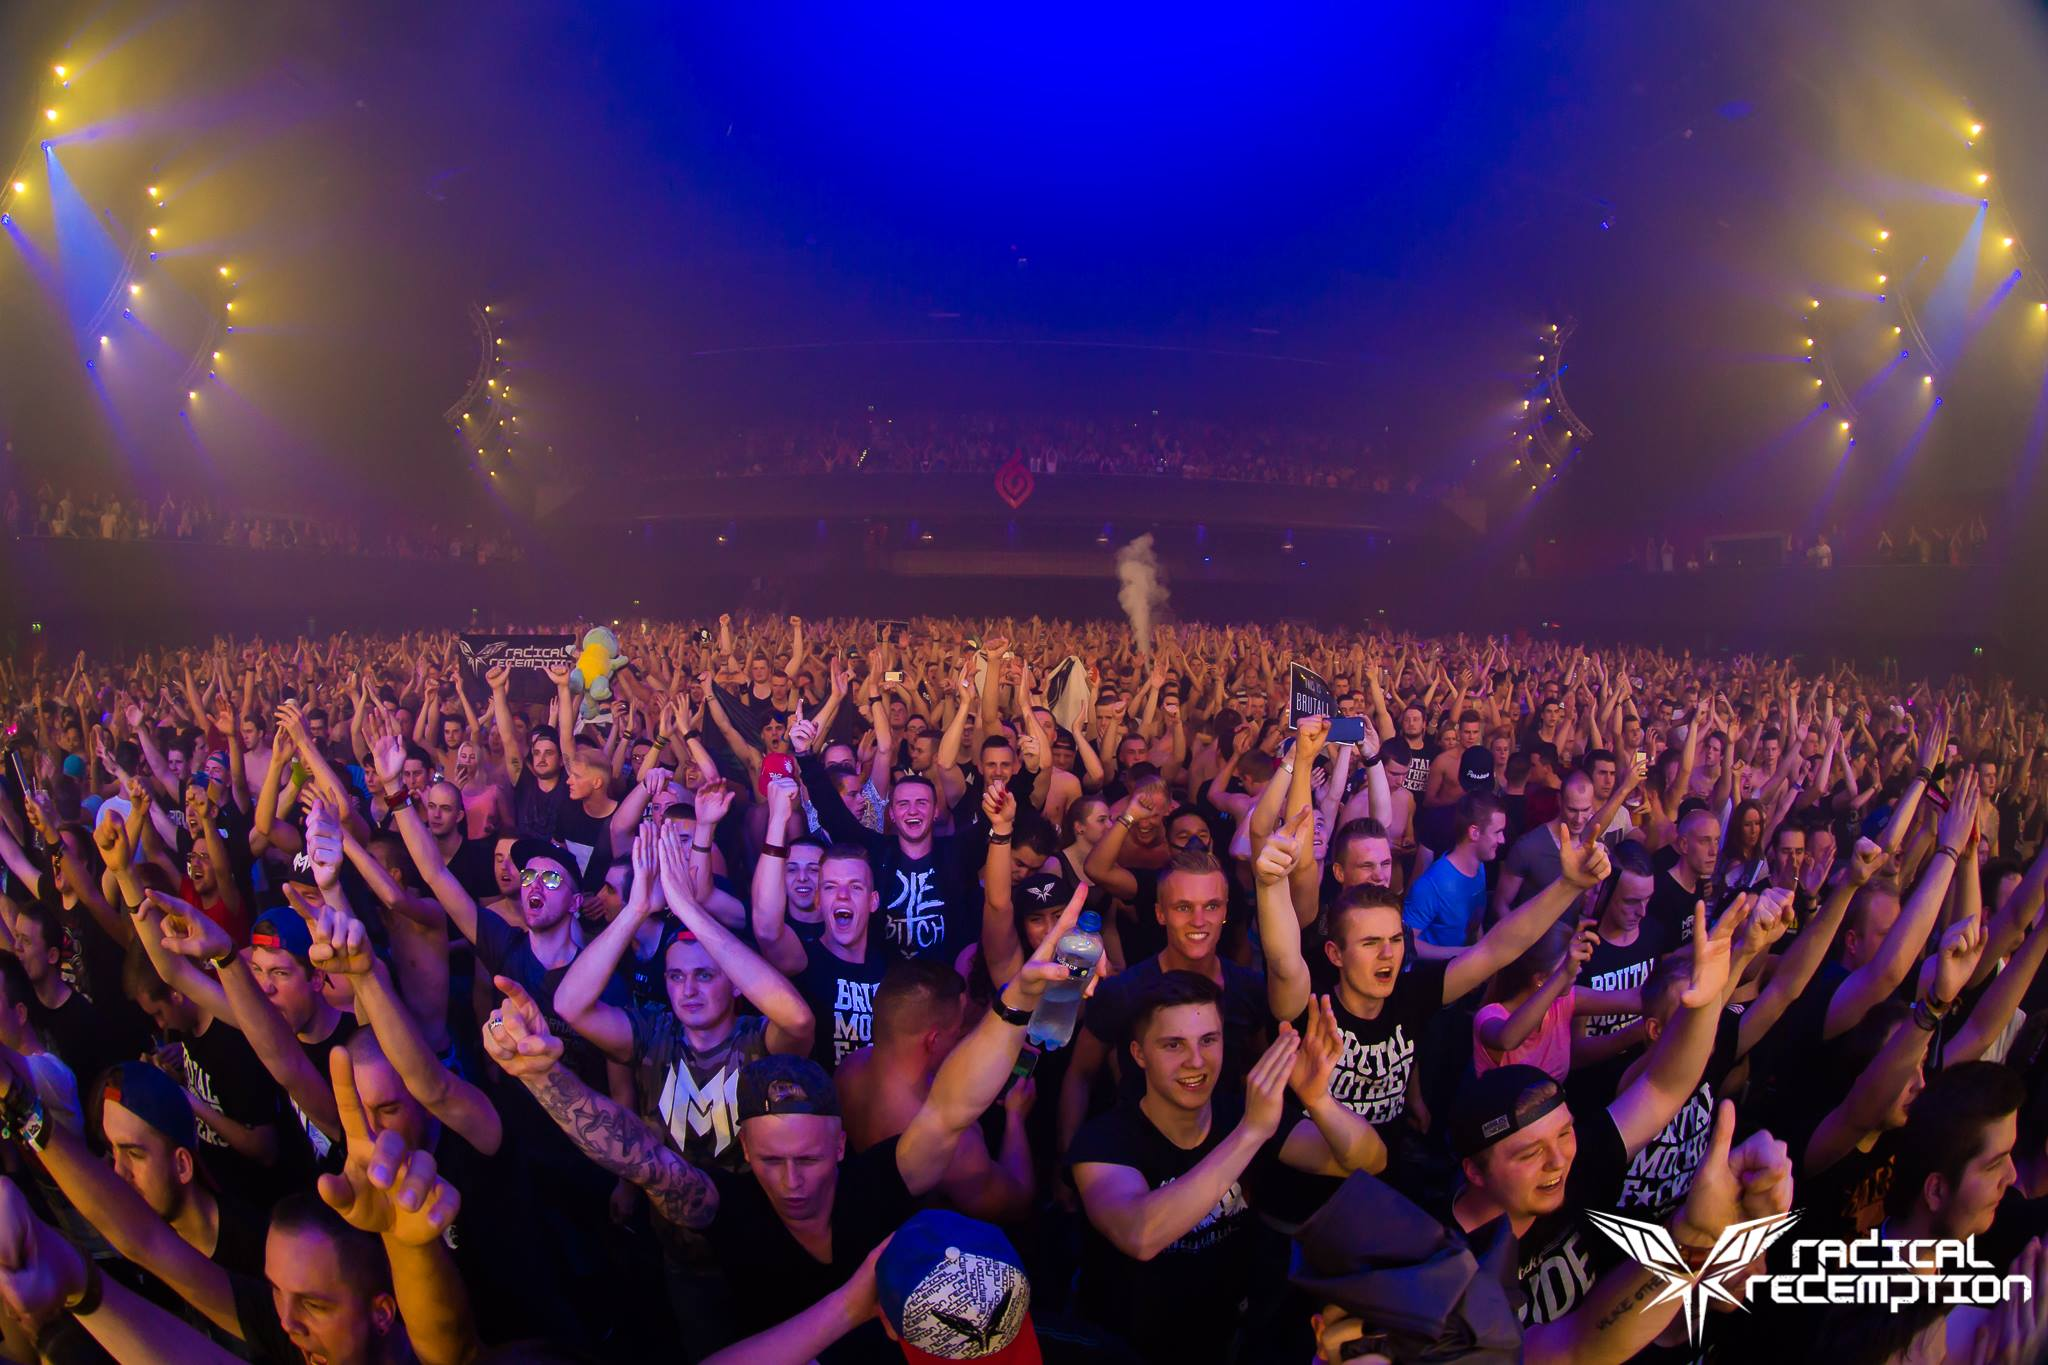 Radical Redemption, The One Man Army